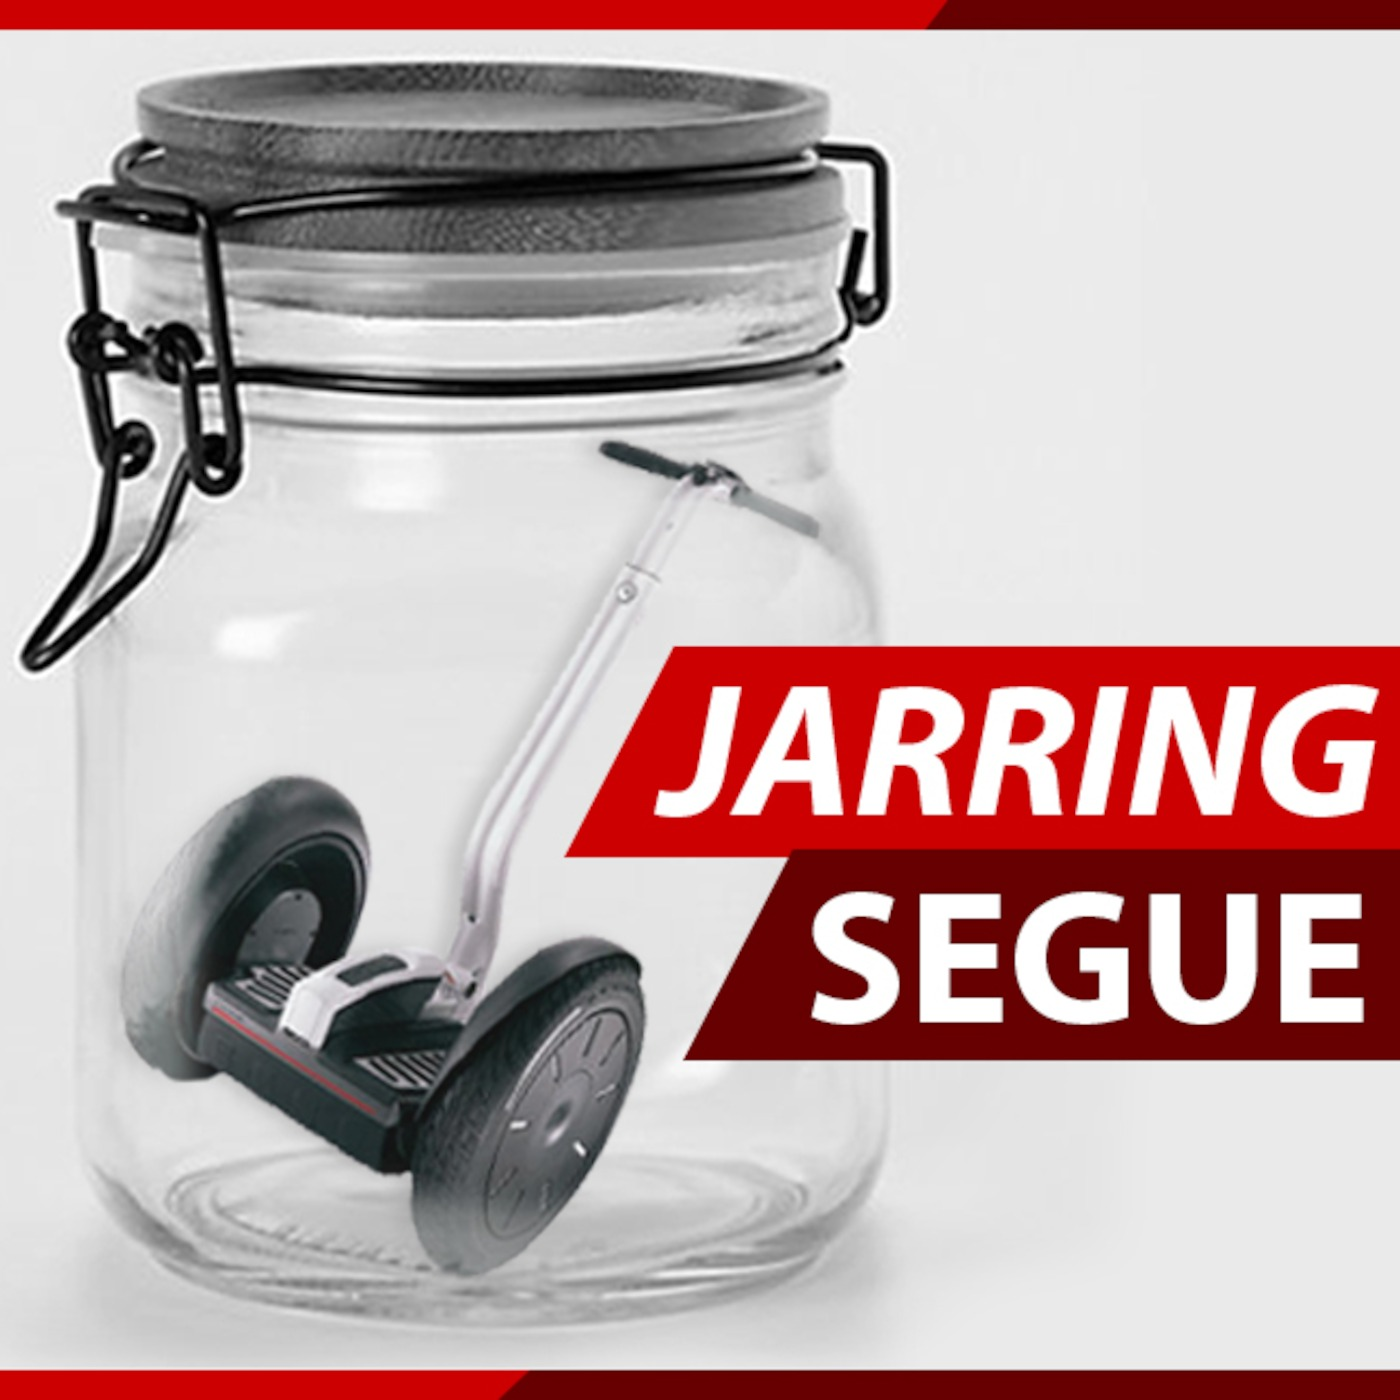 Jarring Segue